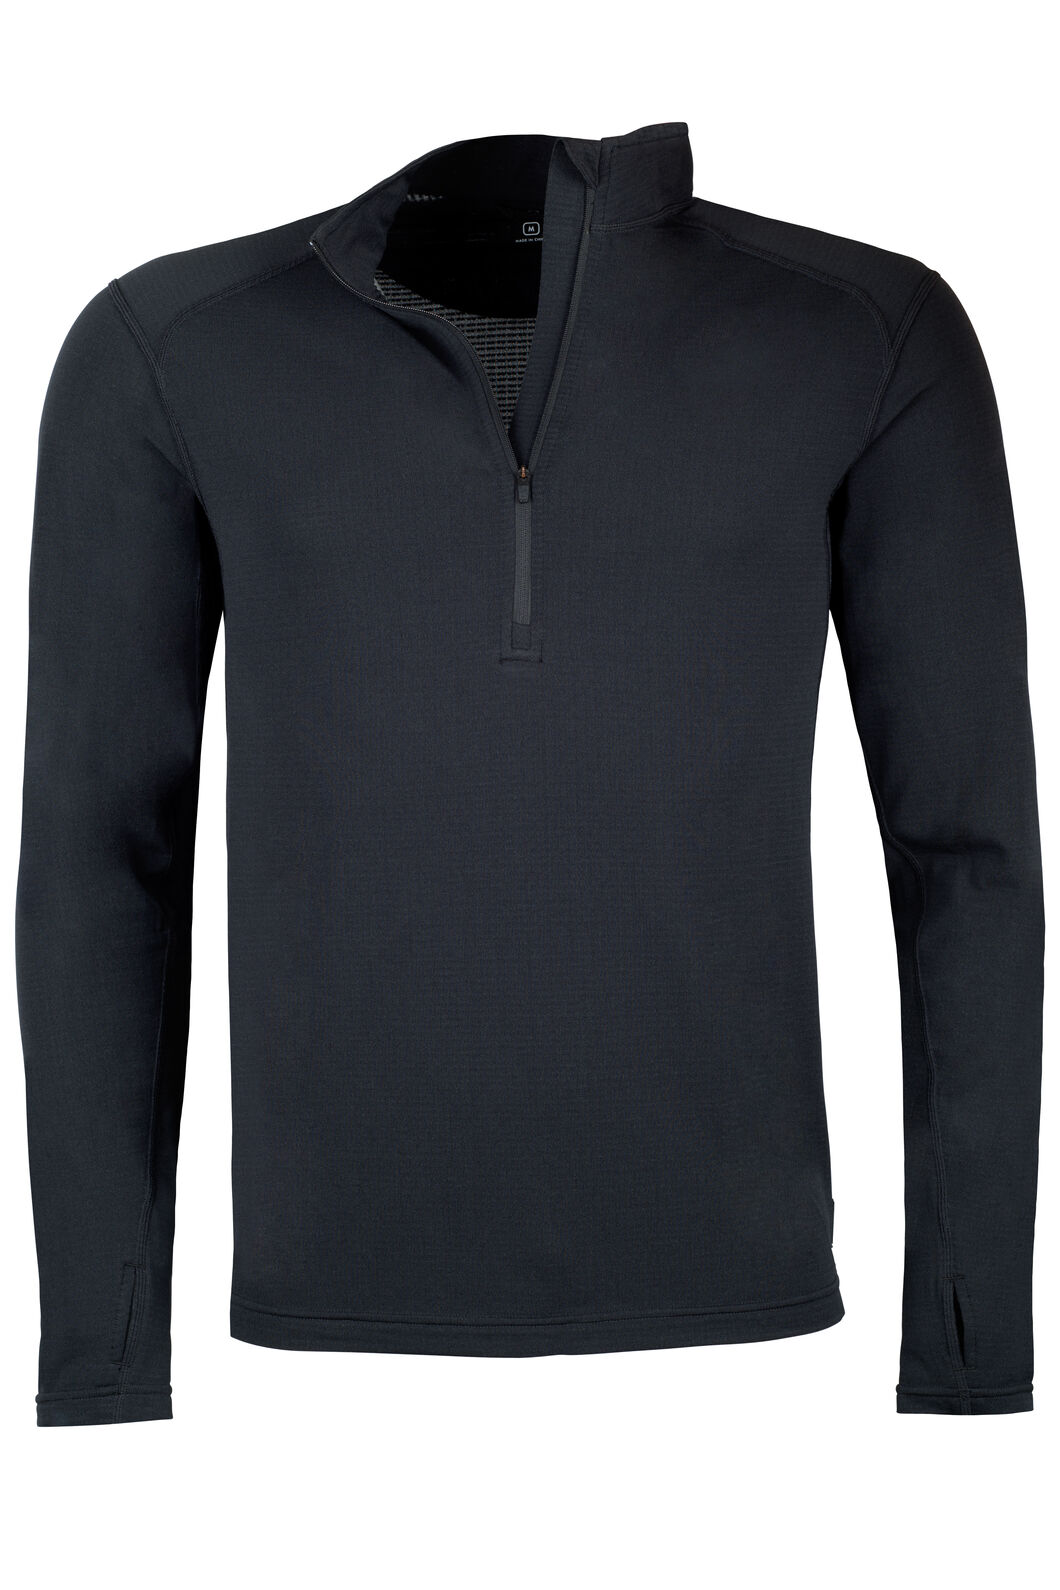 Macpac ProThermal Top - Men's, Black, hi-res